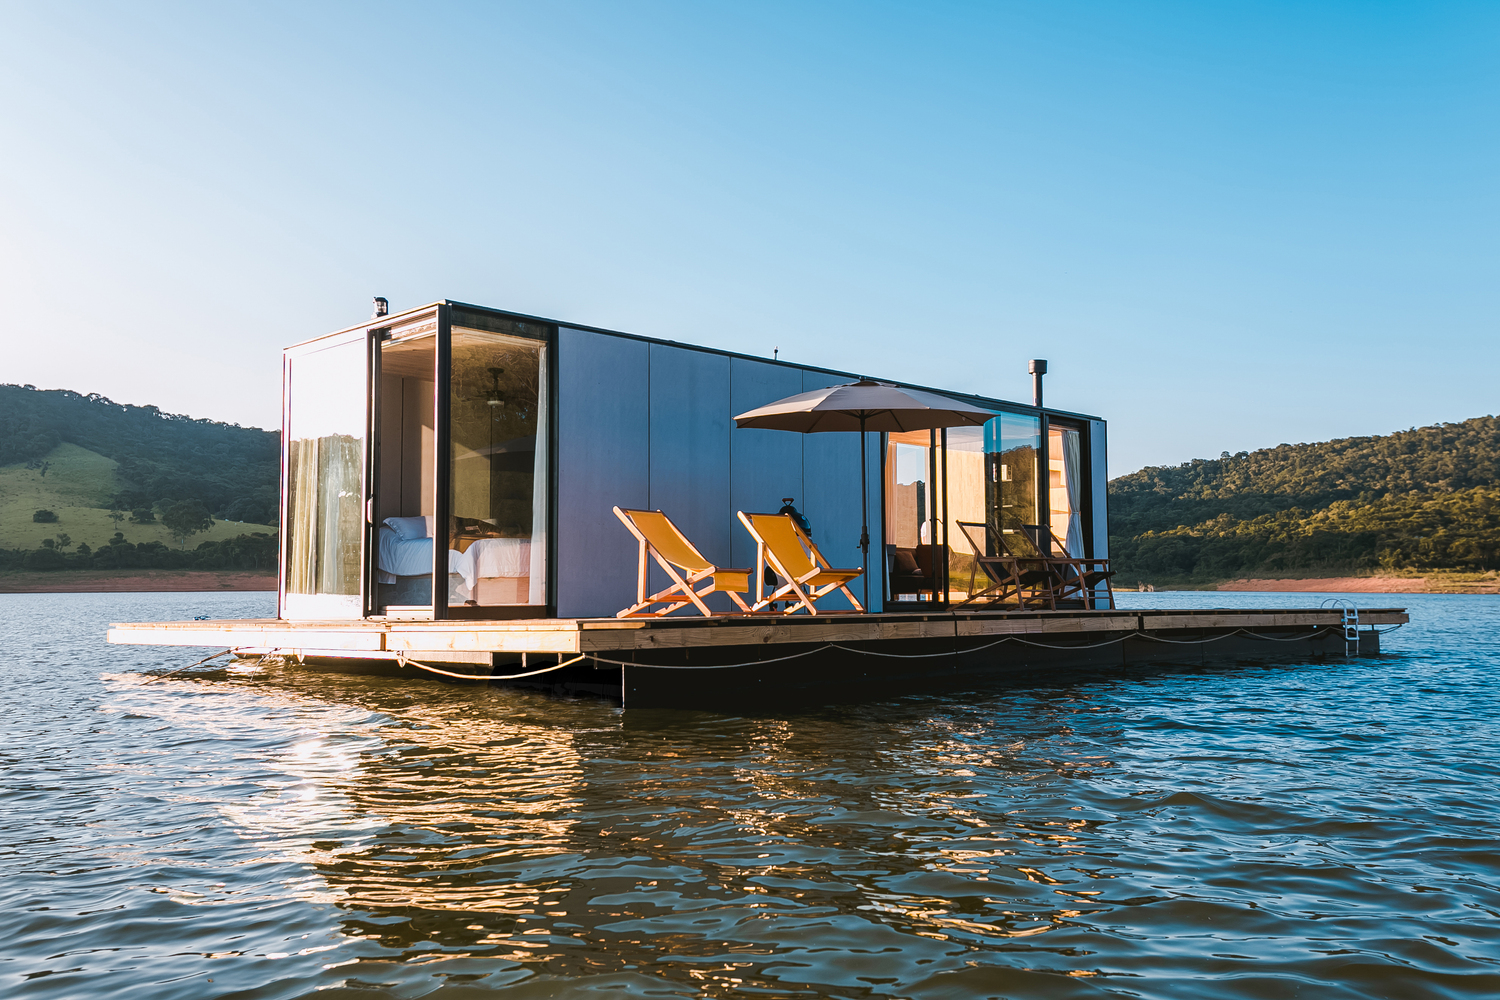 Amazing Floating House WaterlilliHaus by SysHaus